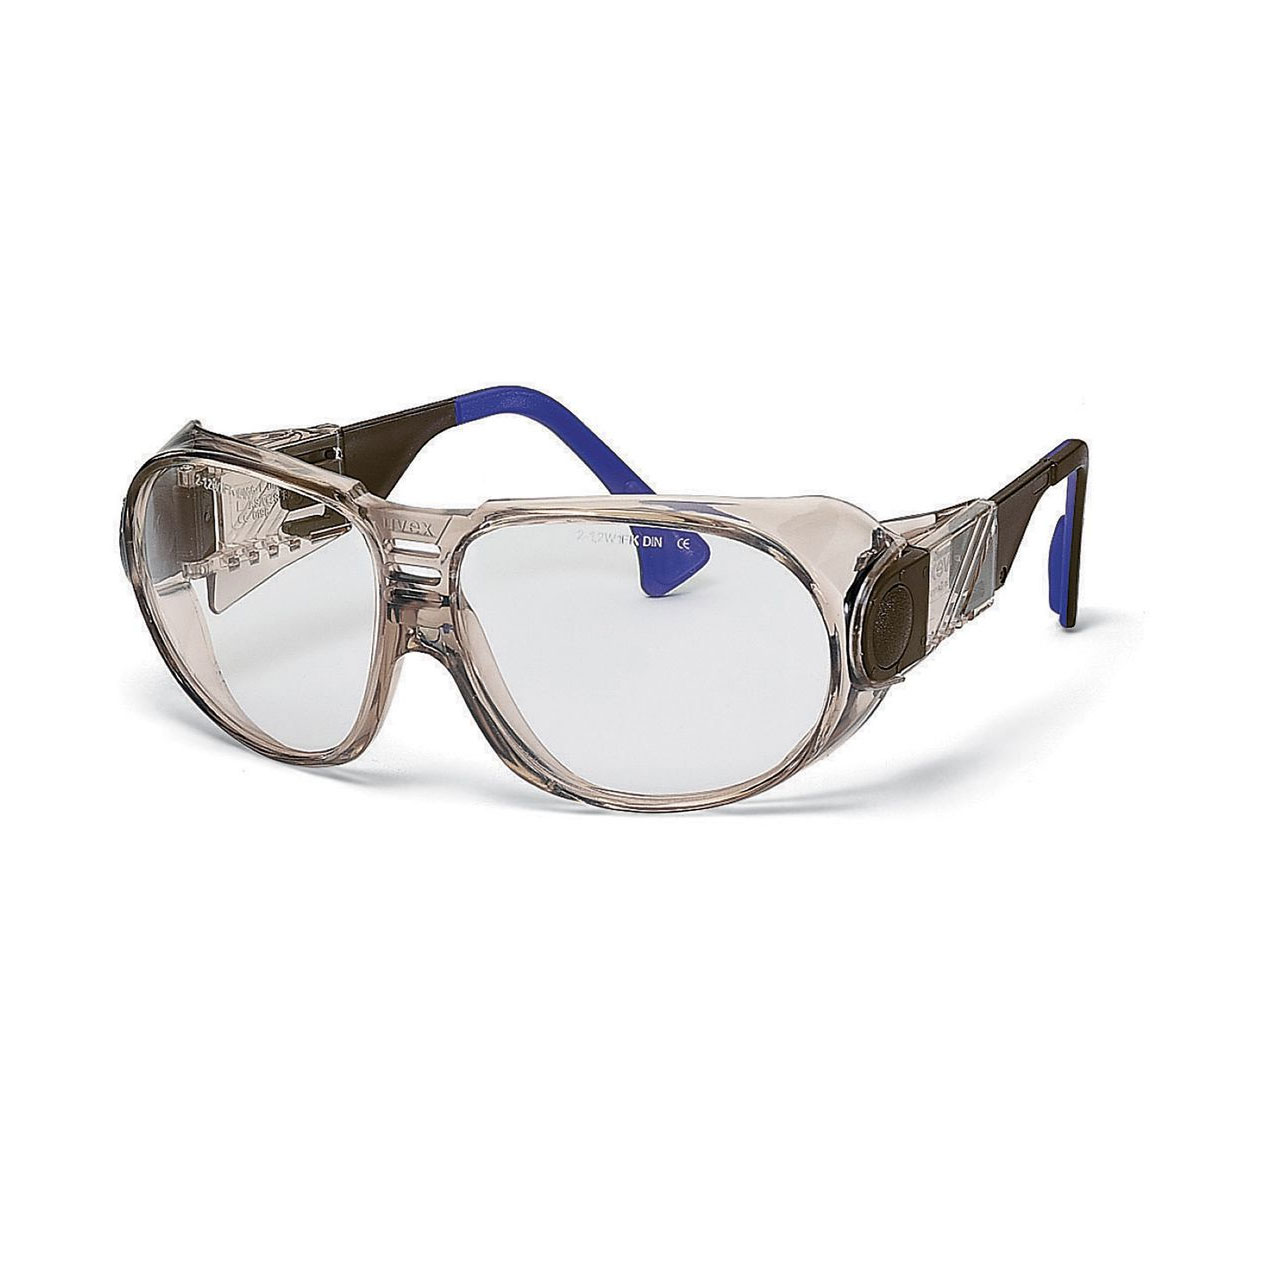 uvex futura safety spectacles - Taupe